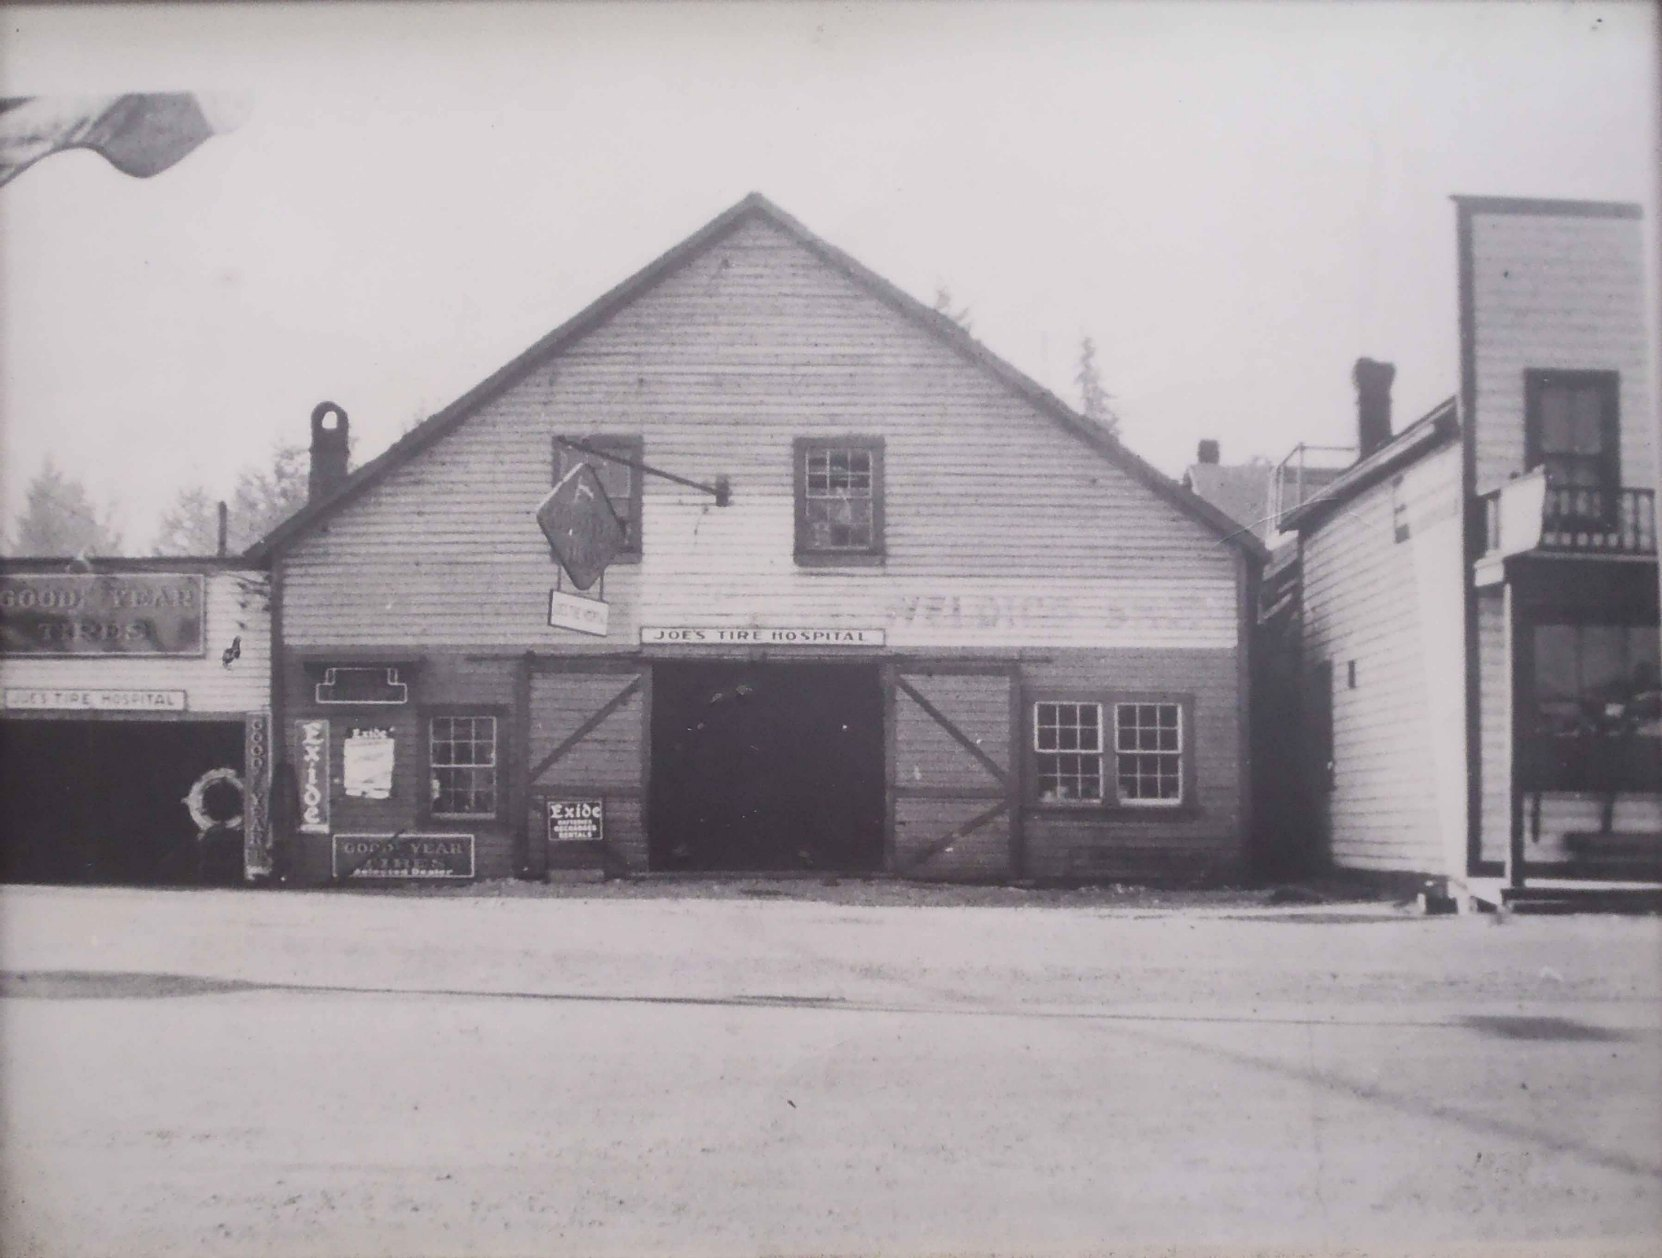 Joe's Tire Hospital, circa 1930. The present Joe's Tire Hospital is on the site of the building on the left. The building in the middle of this photo was demolished in 1940.